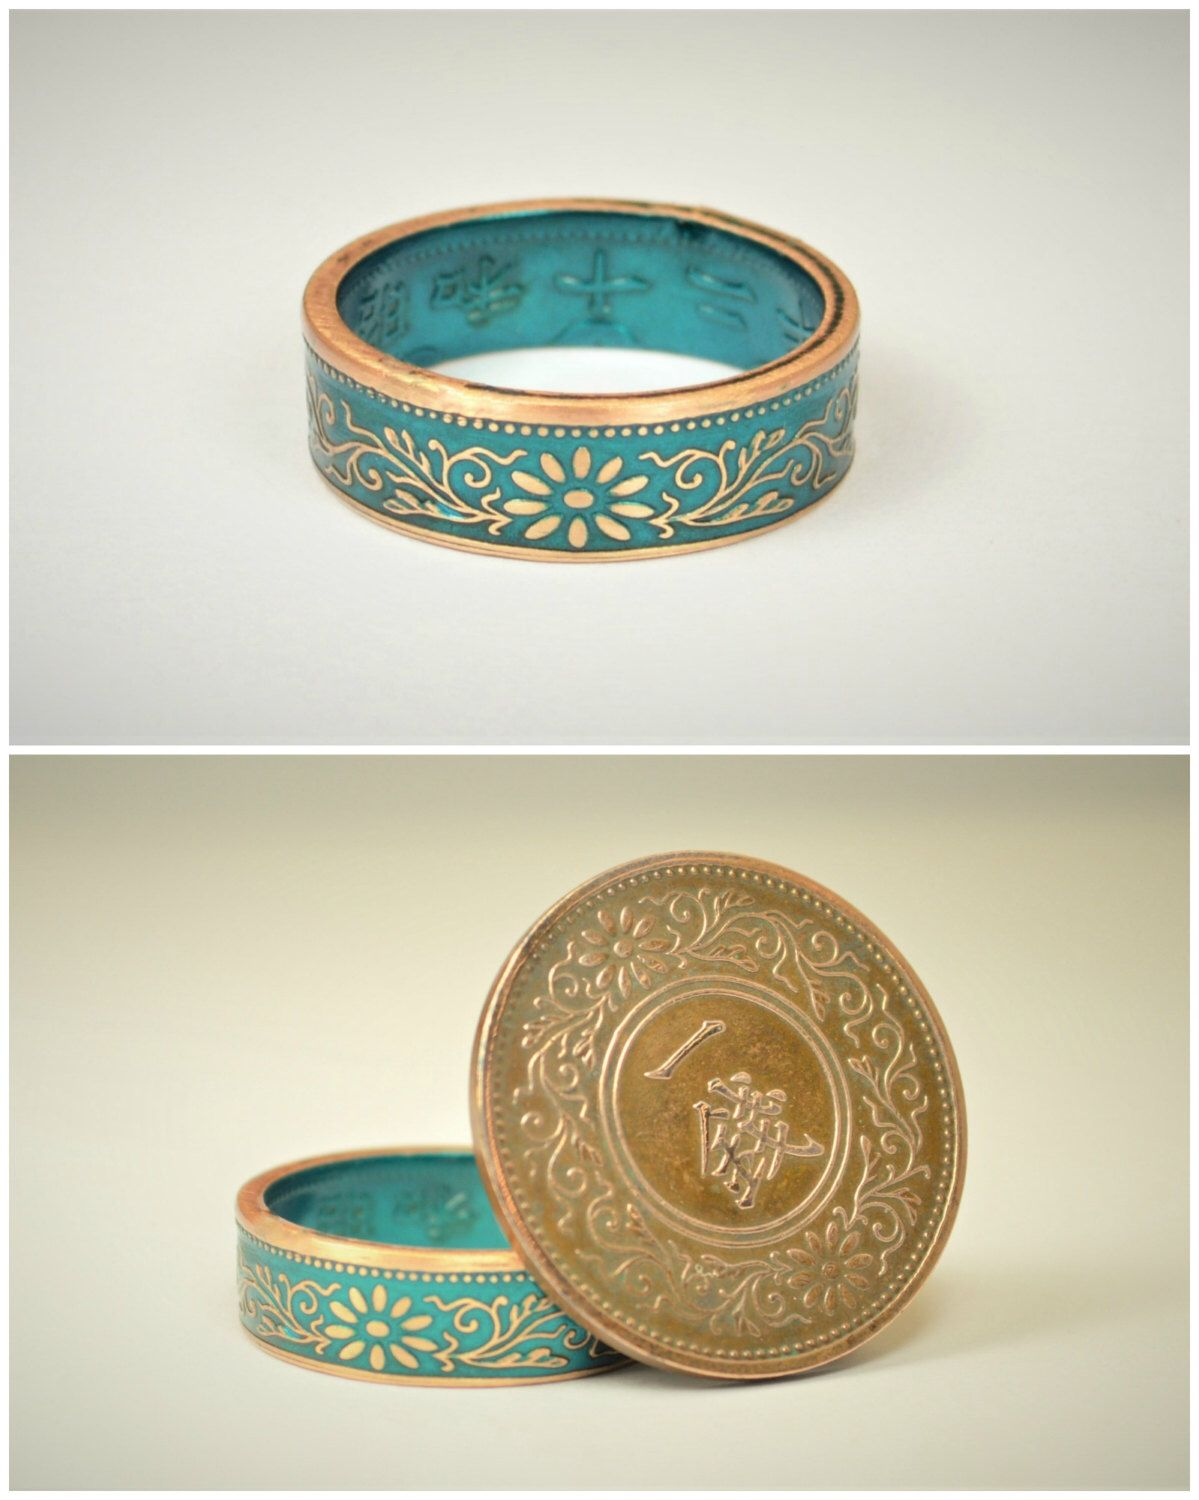 Coin Ring, Turquoise Ring, Japanese Ring, Bronze Ring, Japanese Coin, Japanese Jewelry, Coin Rings, Japanese, Coin Art, Japanese Coin Ring by Alaridesign on Etsy https://www.etsy.com/uk/listing/512498405/coin-ring-turquoise-ring-japanese-ring